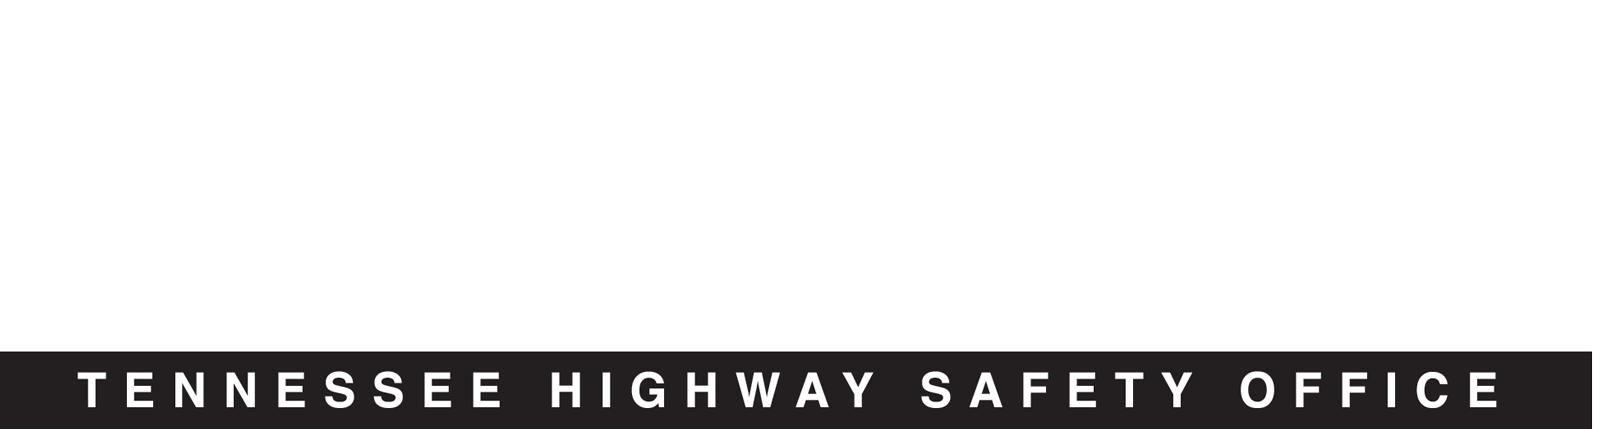 Tennessee Highway Safety Office official sponsor of Nashville New Year's Eve